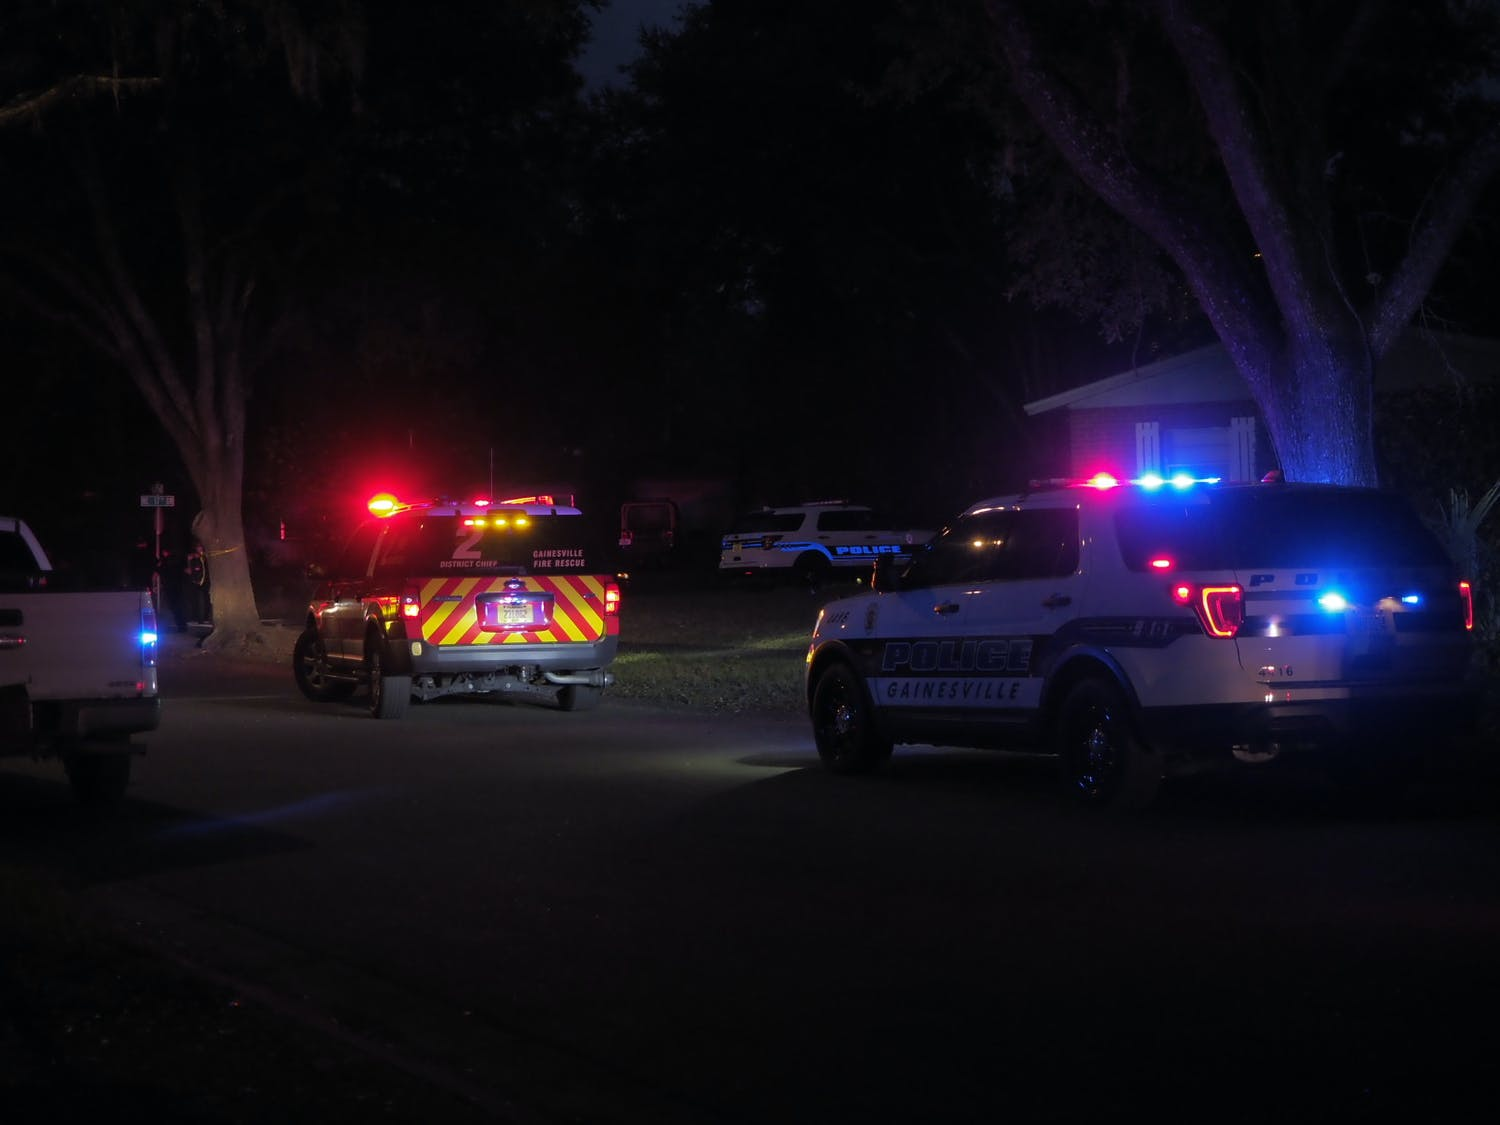 Police arrived at the scene on the 2900 block of Northeast 17th Drive. Kivi J. Ellis, 26, was arrested Friday evening.